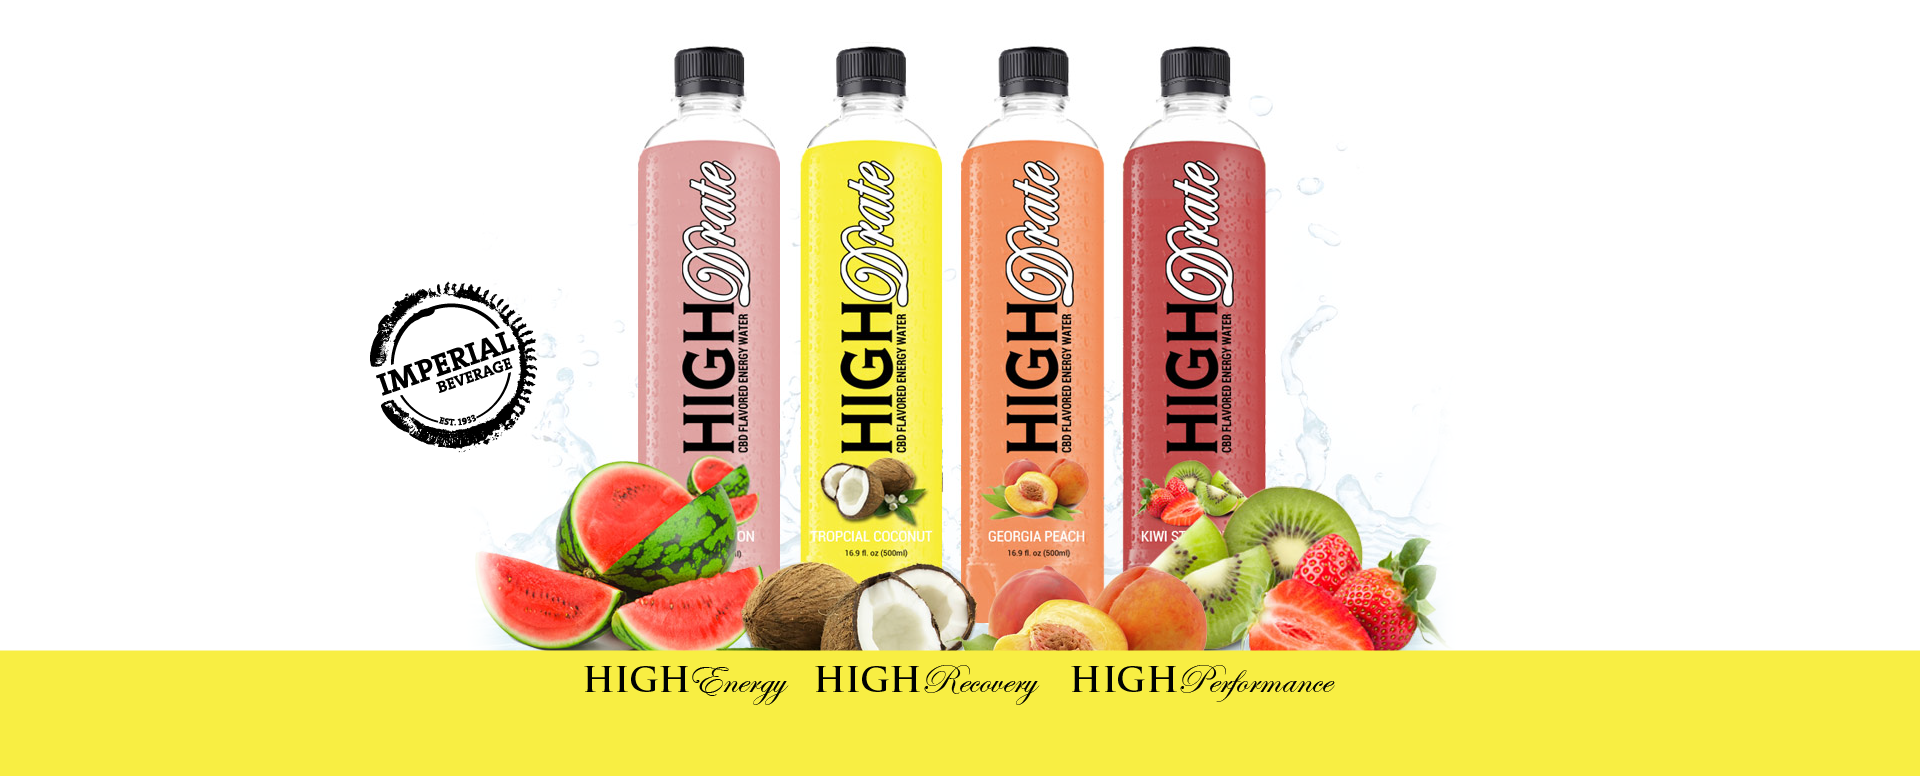 Imperial Beverage Highdrate CBD Energy Water